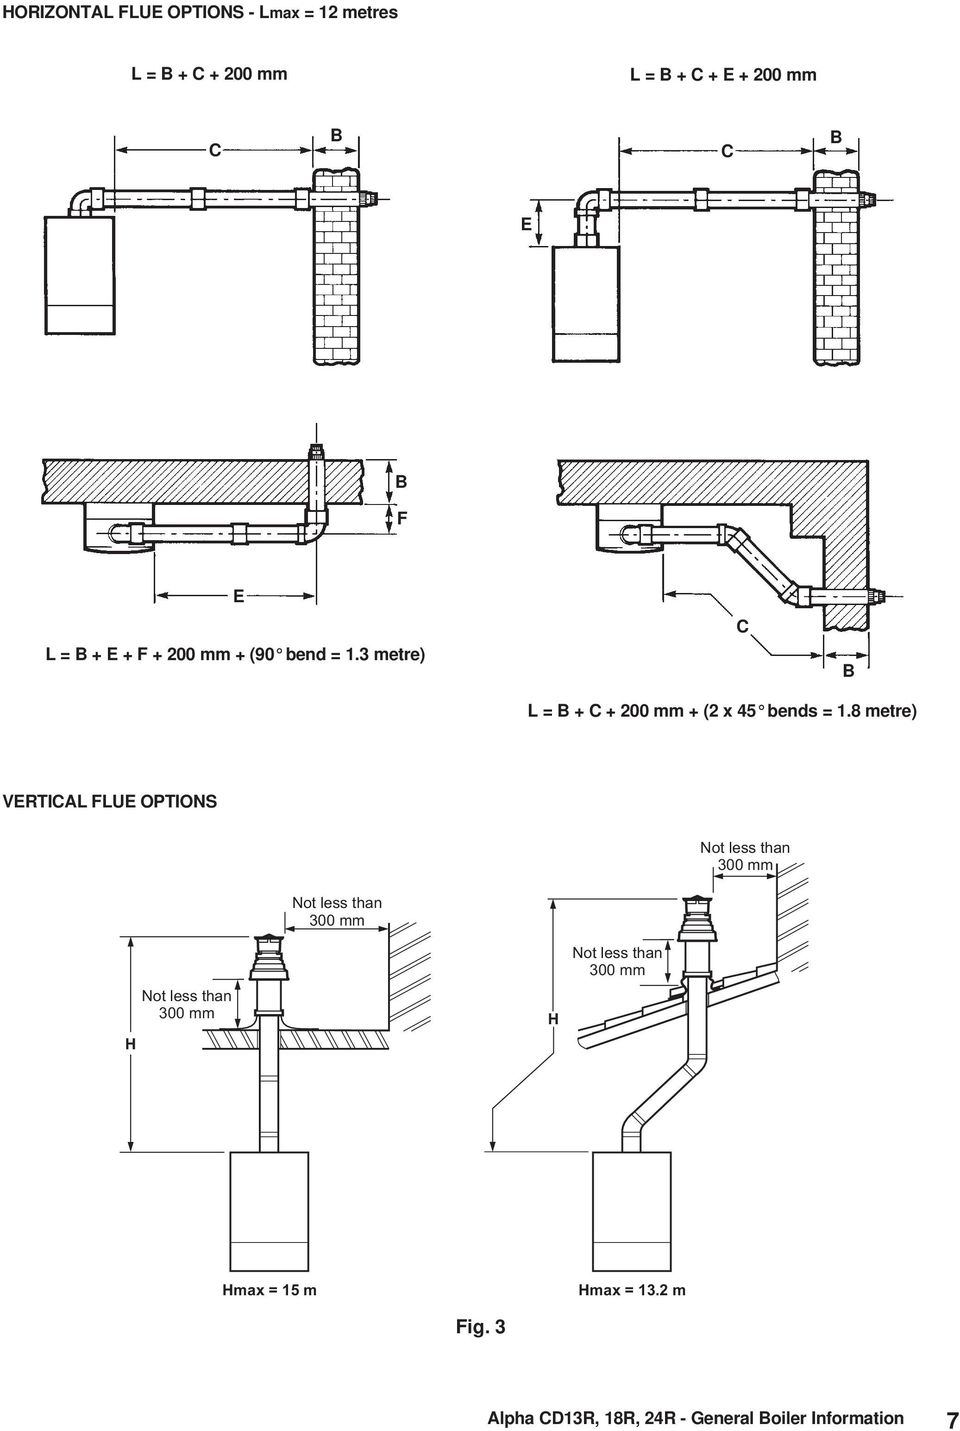 Alpha Cd13r18r And 24r Pdf Boilers Wiring Diagrams 8 Metre Vertical Flue Options Not Less Than 300 Mm